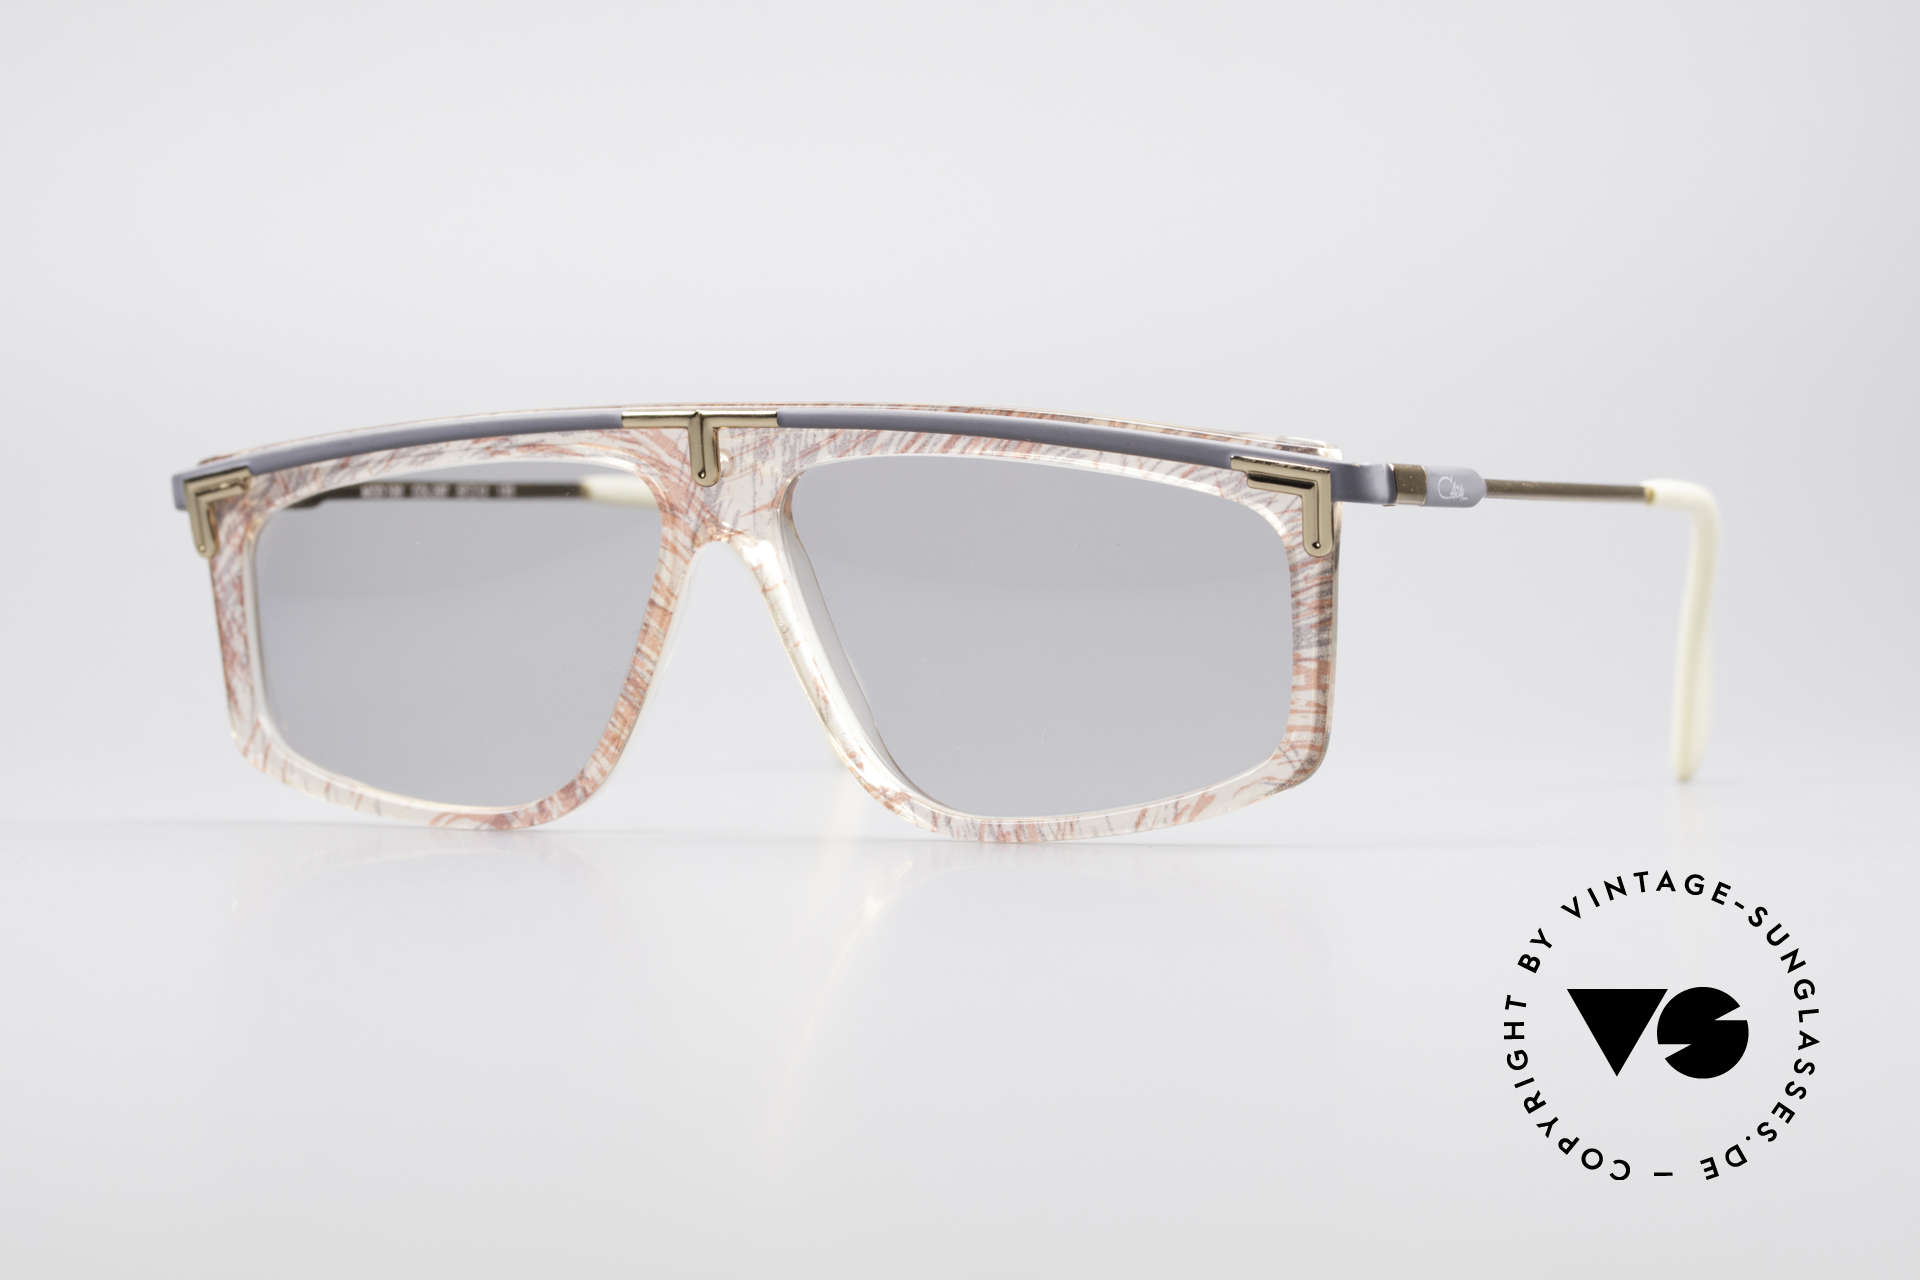 Cazal 190 Old School Hip Hop 1980's, legendary vintage Cazal sunglasses from the late 80's, Made for Men and Women